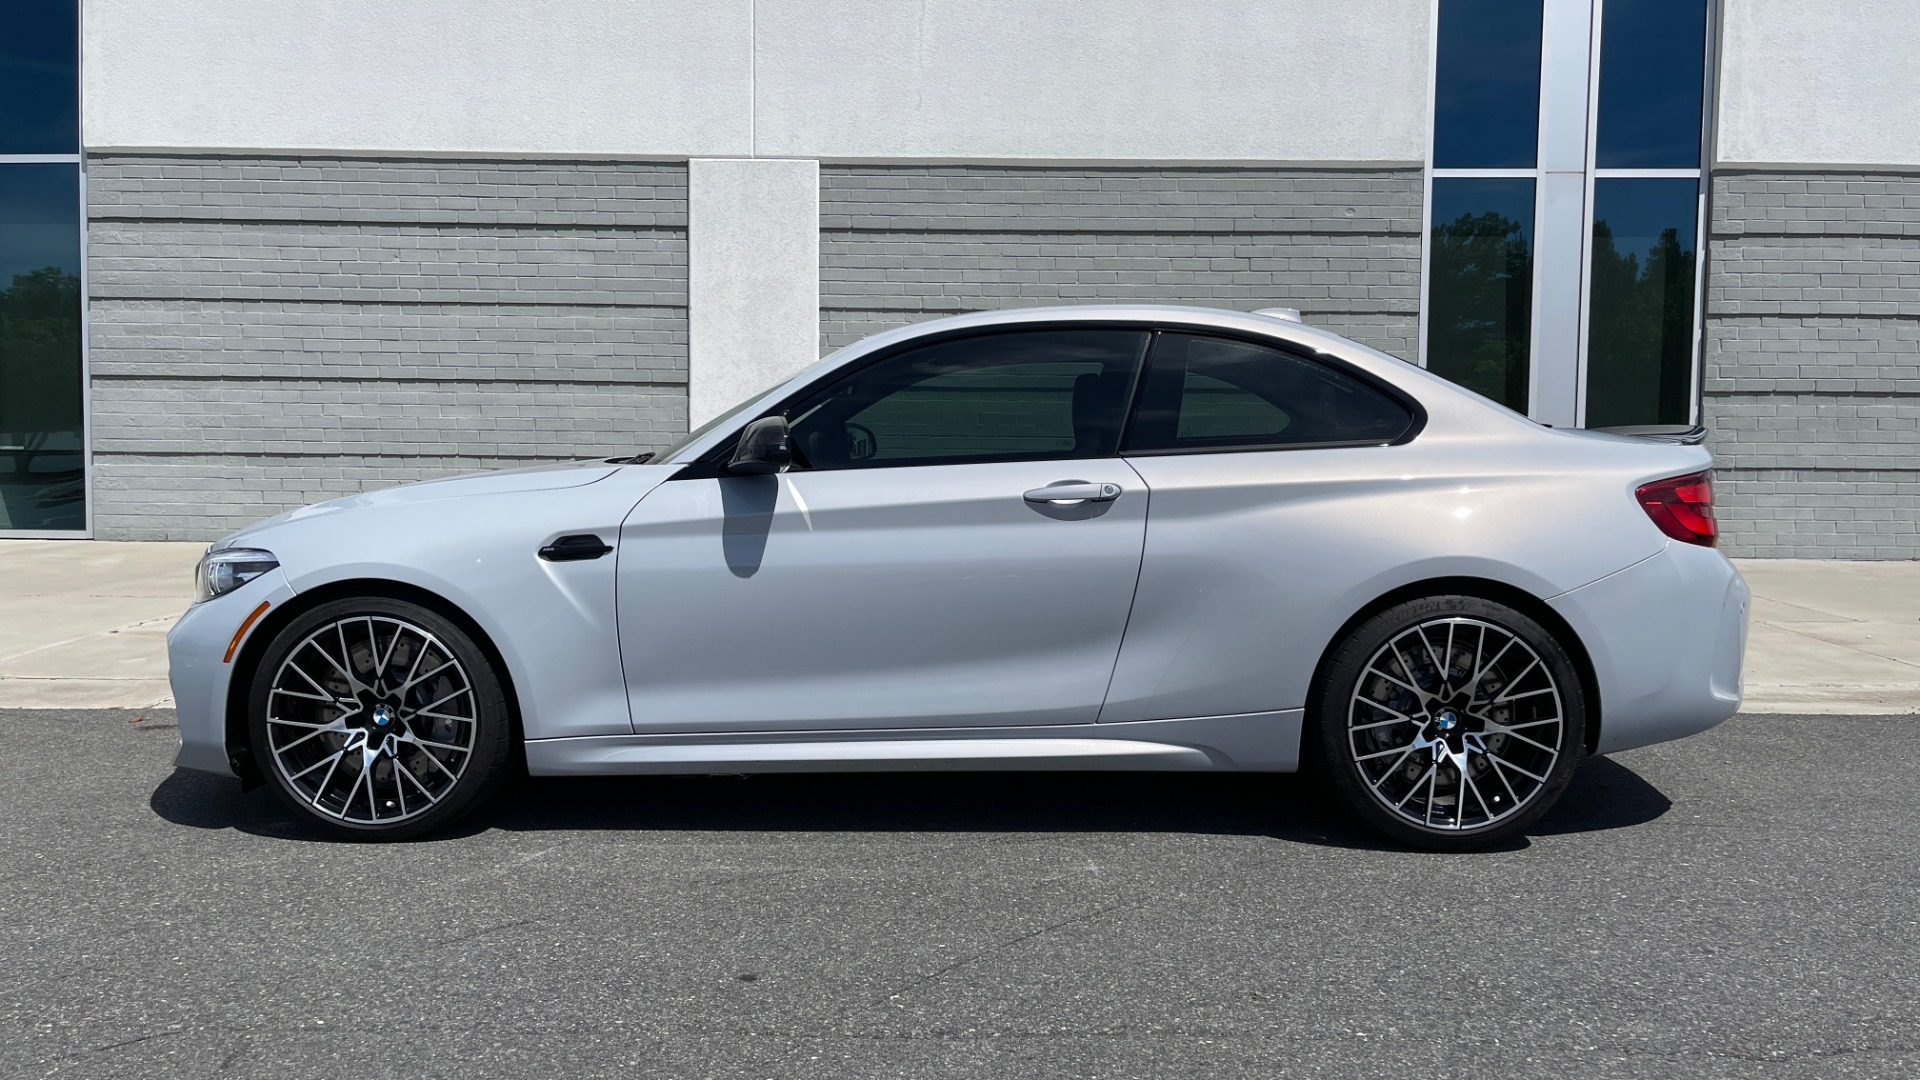 Used 2020 BMW M2 COMPETITION 405HP / COUPE / MANUAL / NAV / H/K SOUND / REARVIEW for sale $64,388 at Formula Imports in Charlotte NC 28227 4